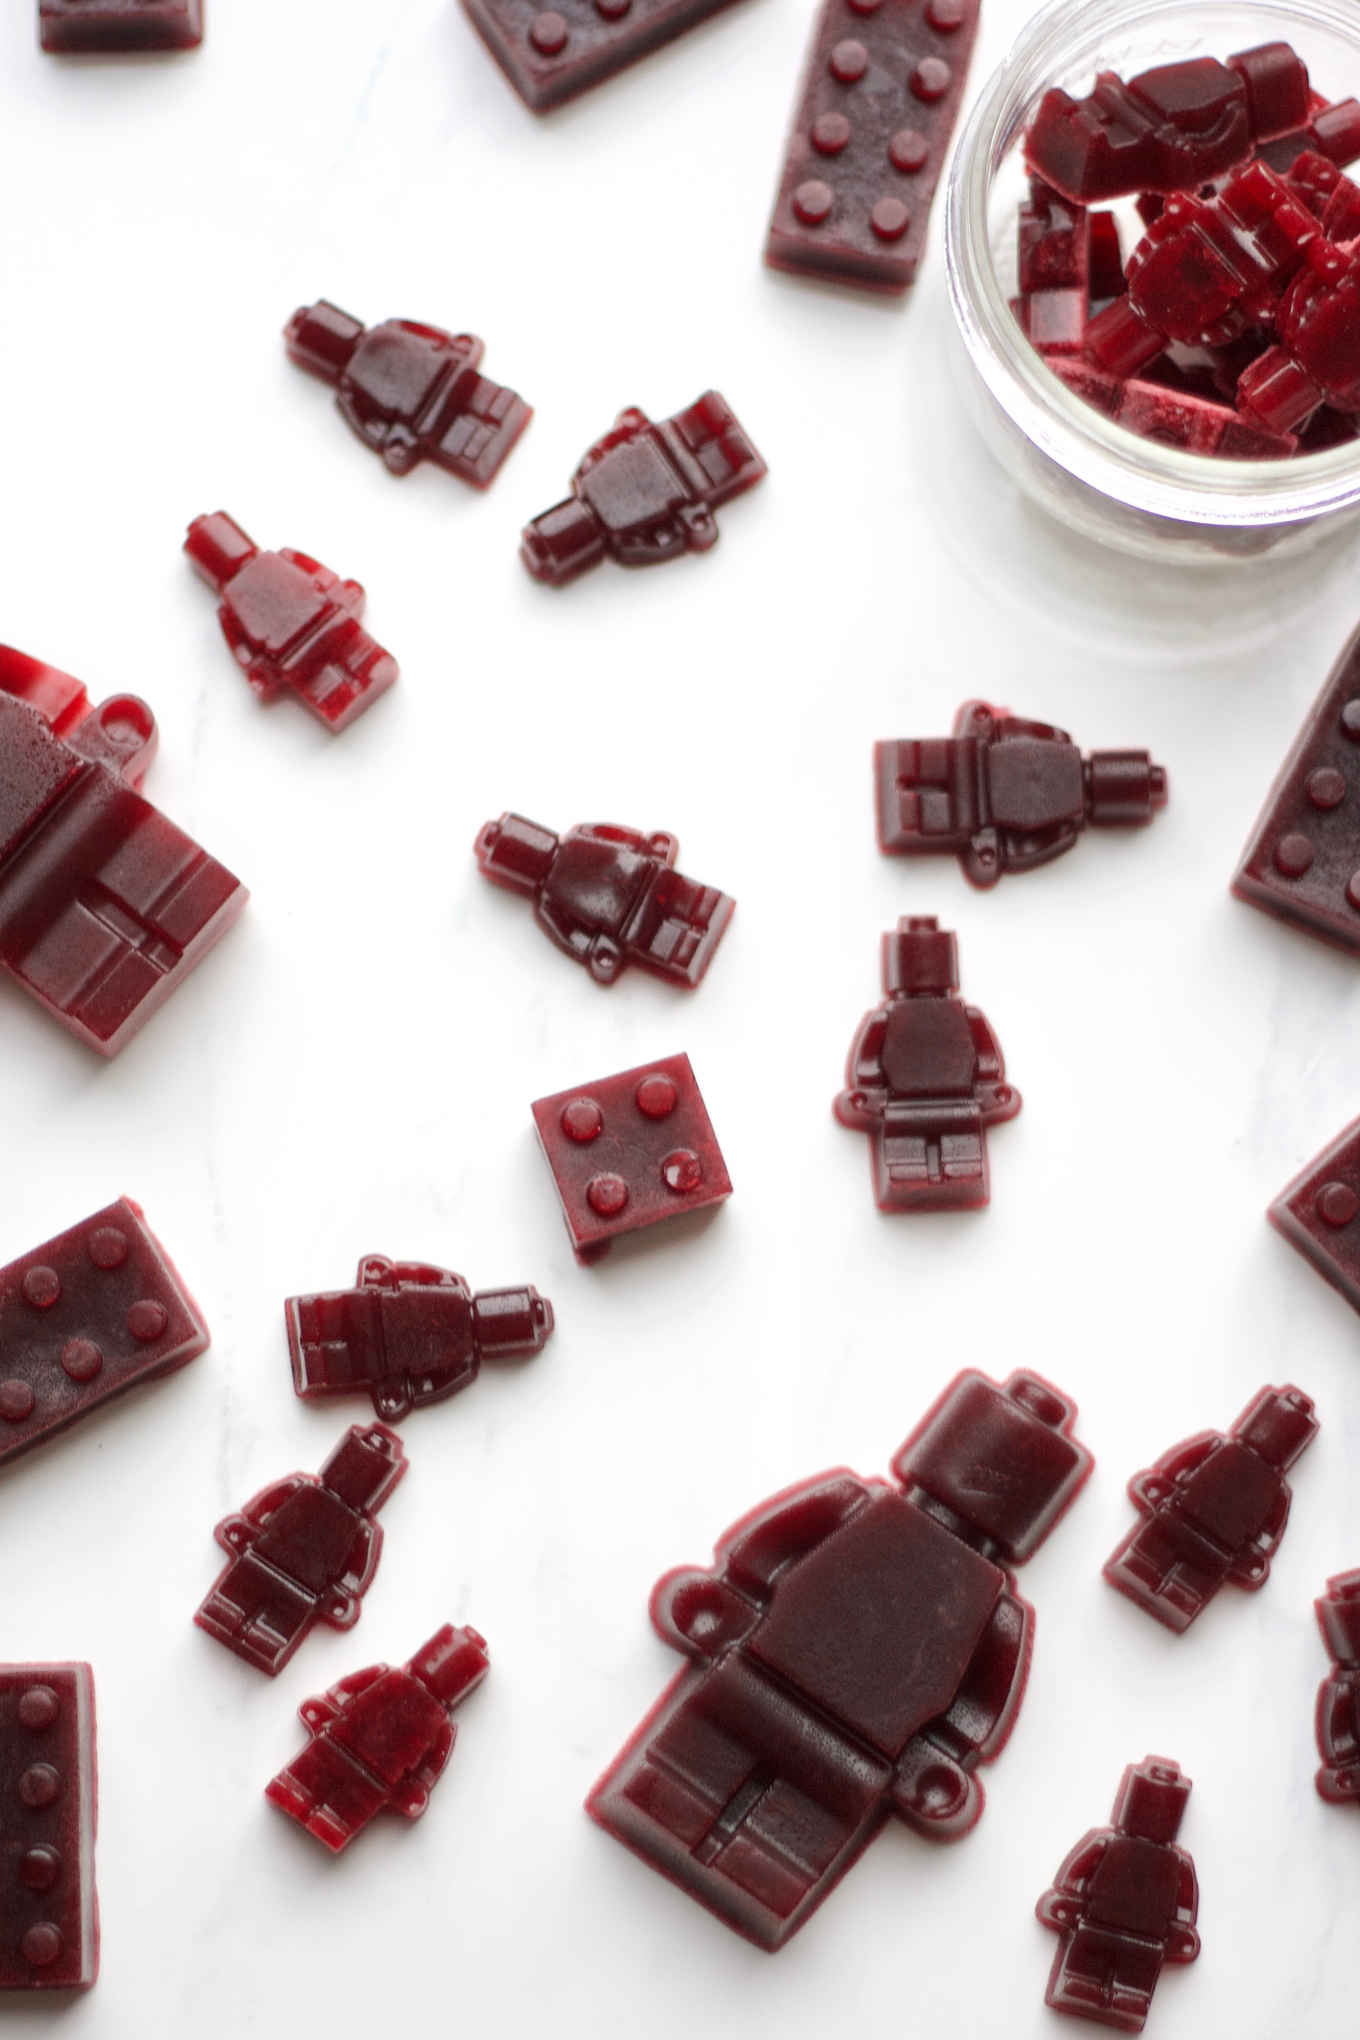 Healthy Gummy Lego Candy (Paleo, Whole30) | Yang's ...